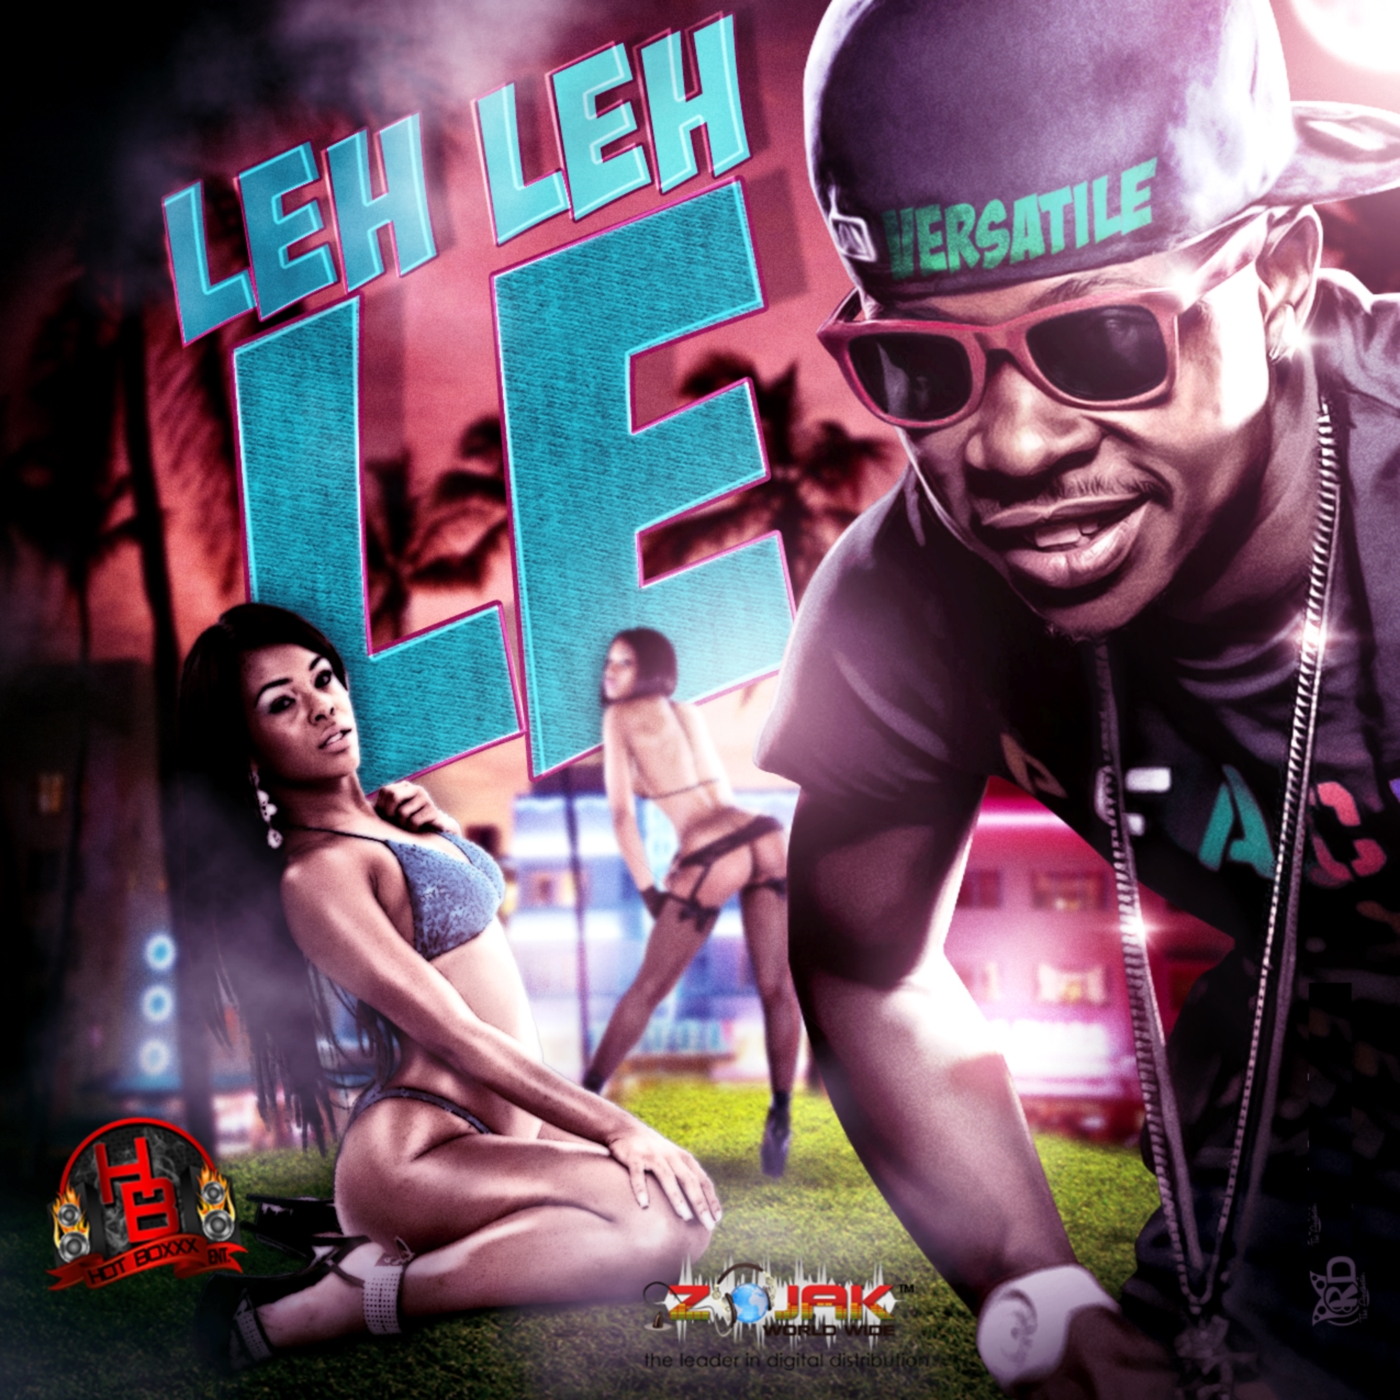 versatile-leh-leh-le-hot-boxxx-music-artwork